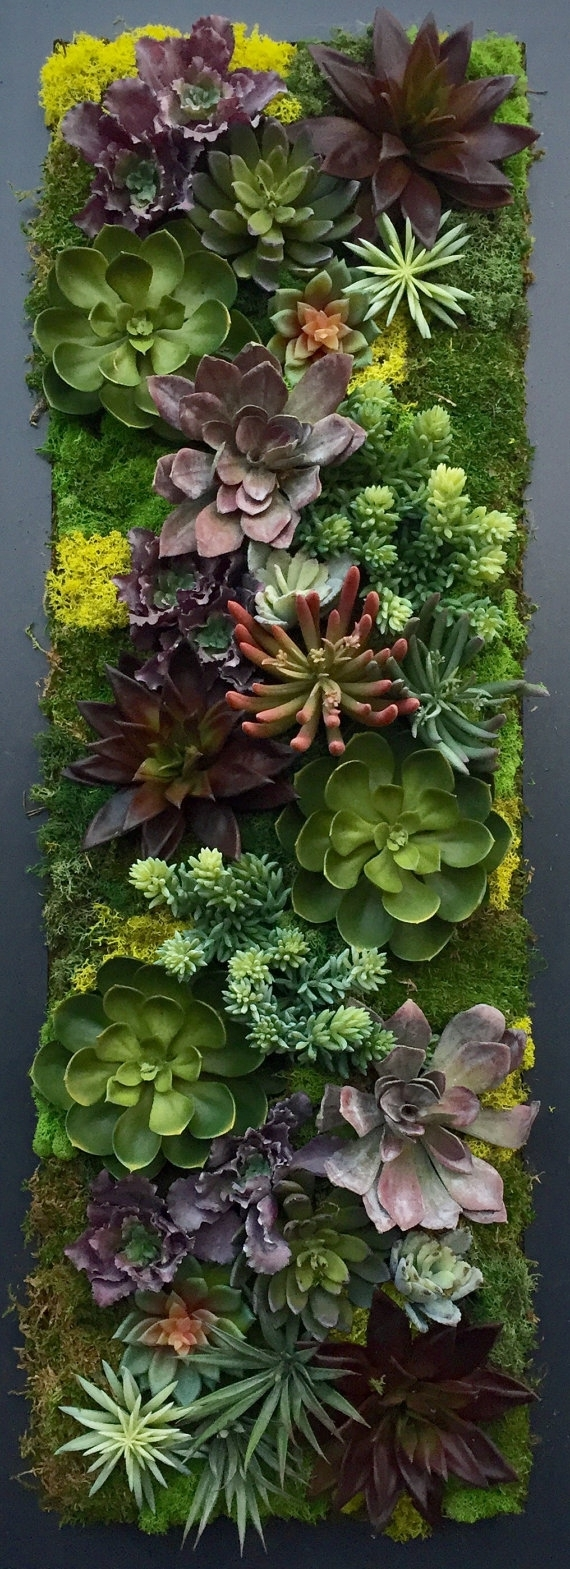 Custom Made Succulent Wall Art | ????????? | Pinterest | Succulent With Current Succulent Wall Art (Gallery 16 of 20)